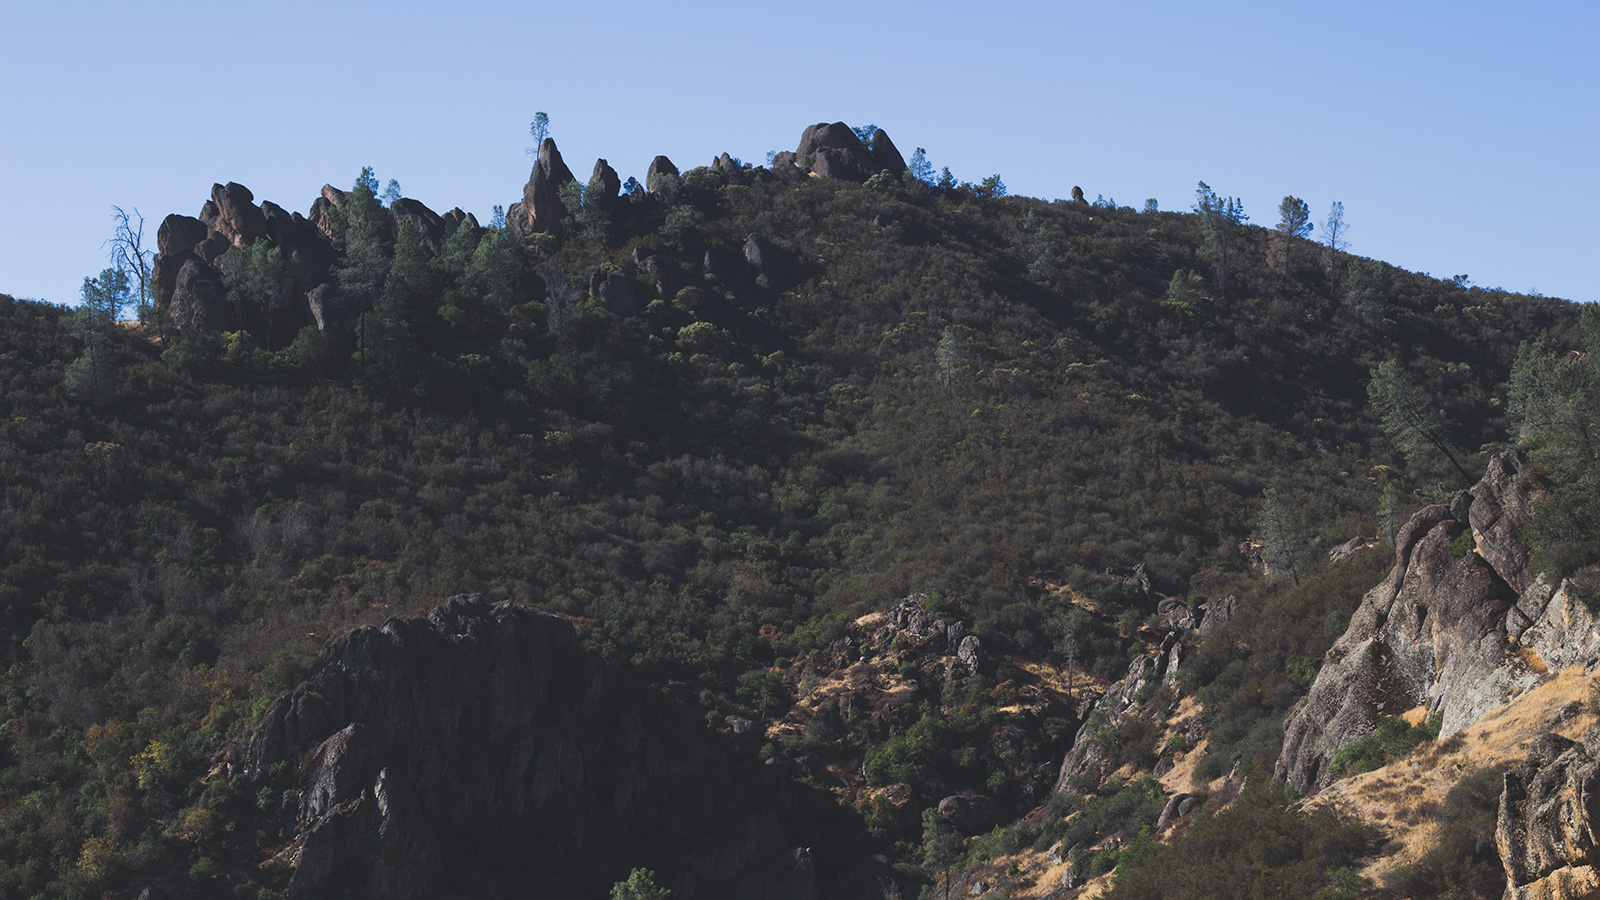 The rock spires that give the park its name